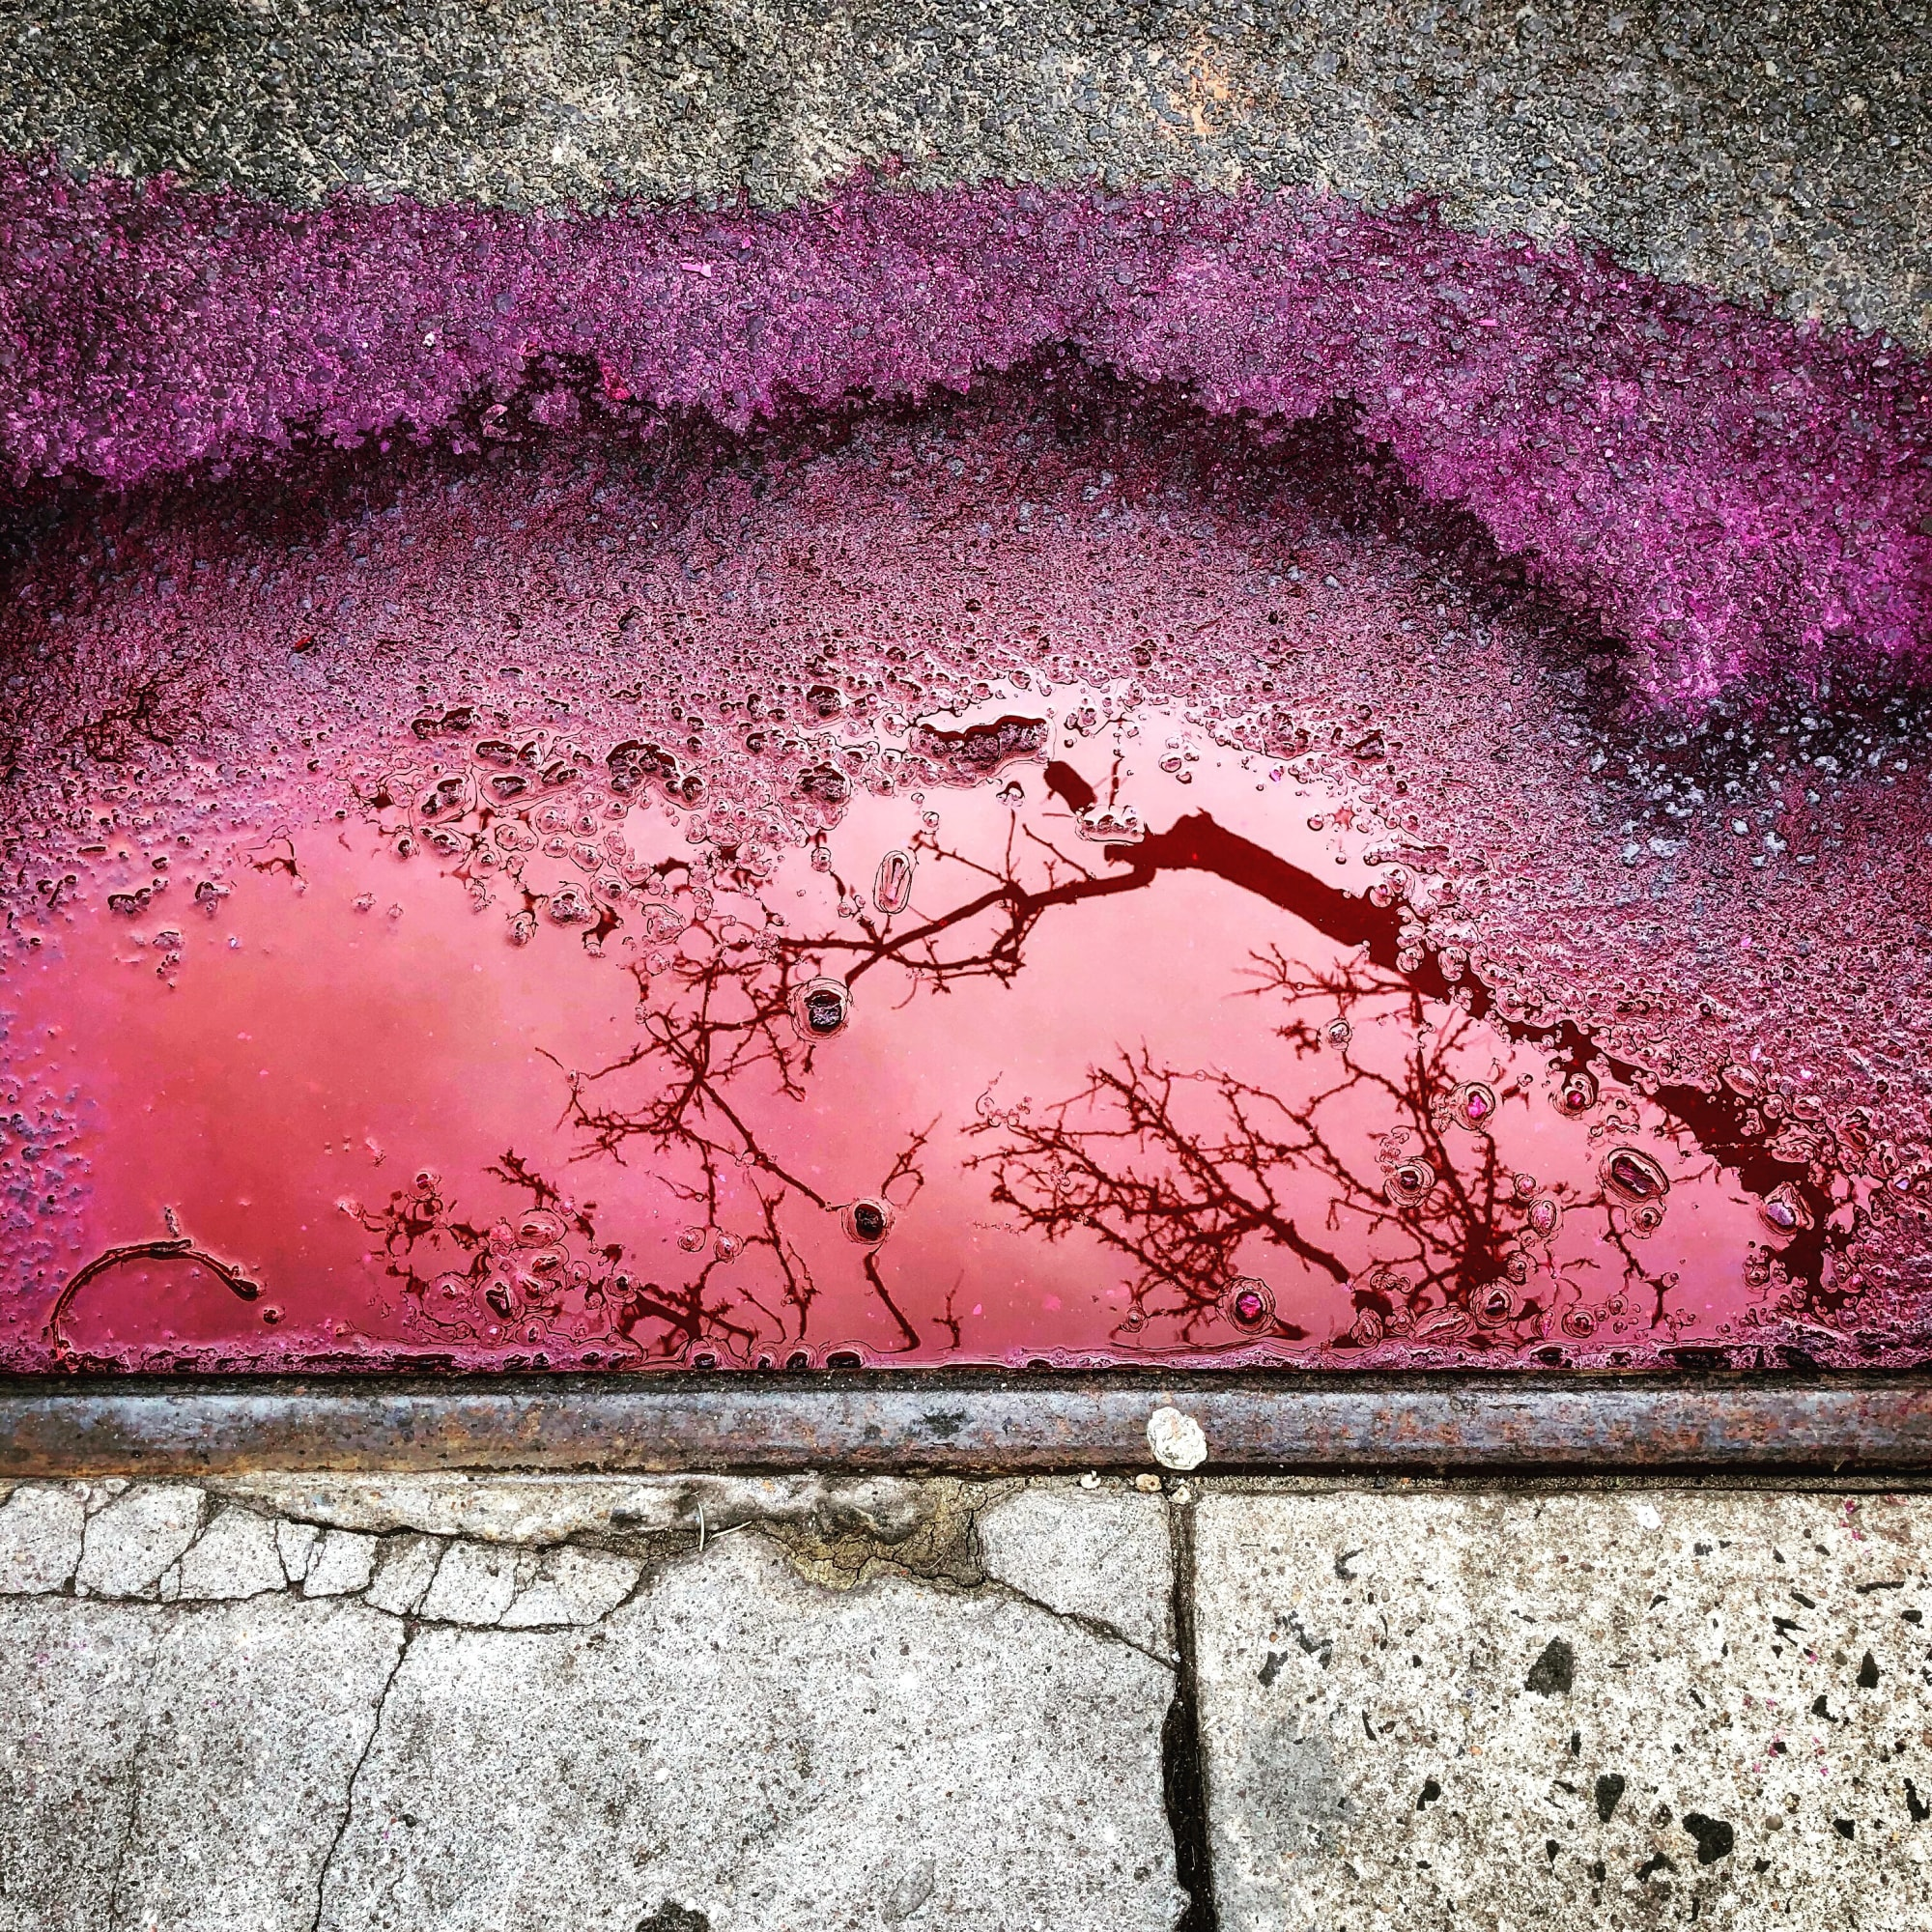 Cindy Kleine, Pink Puddle, 2019